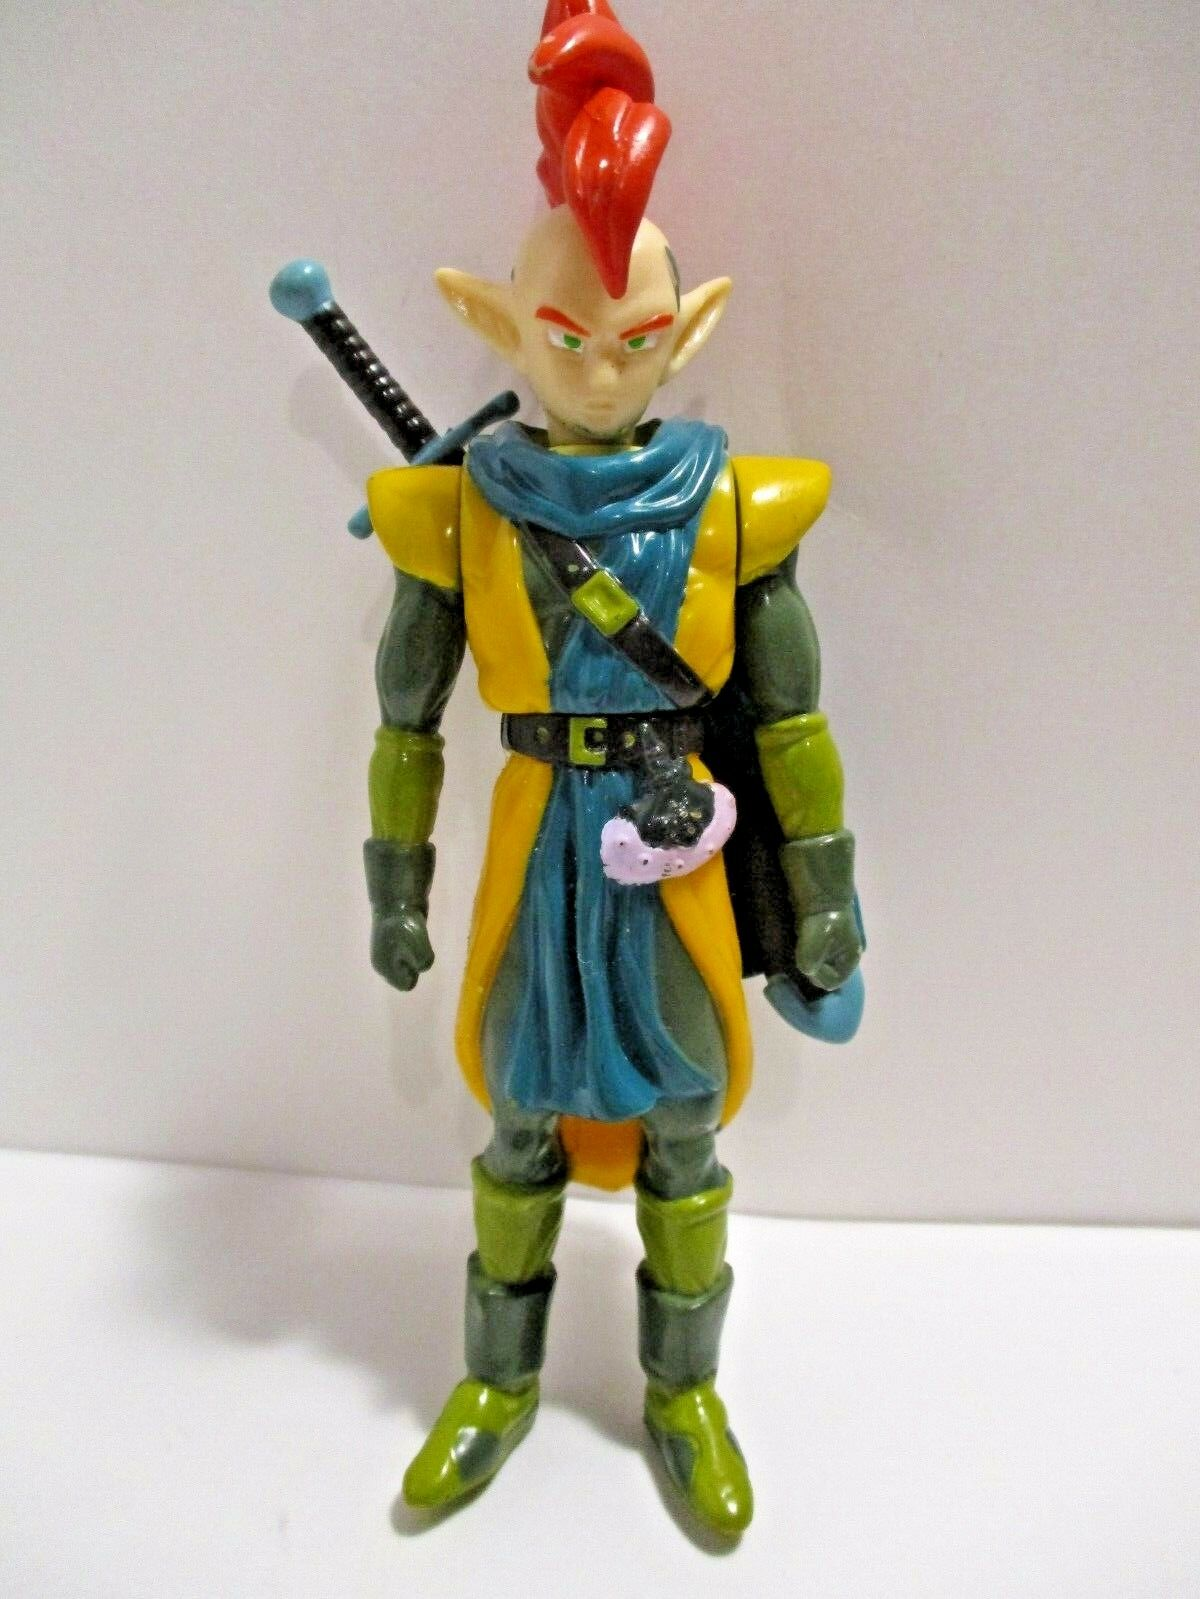 1989 1989 1989 DRAGON BALL Z  DBZ  RARE  SUPER GUERRIERS   TAPION HARD TO FIND   392512